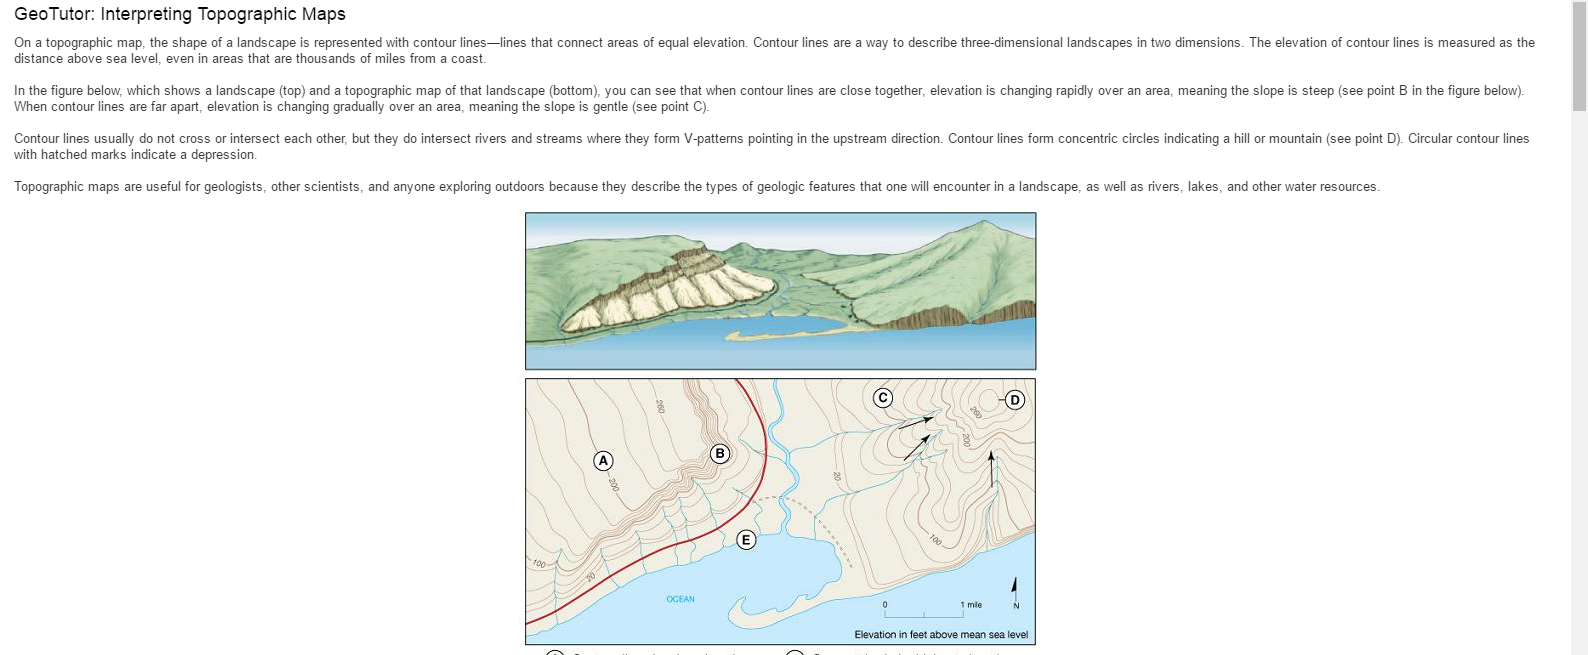 How Do You Find The Elevation On A Topographic Map.Solved Geotutor Interpreting Topographic Maps On A Topog